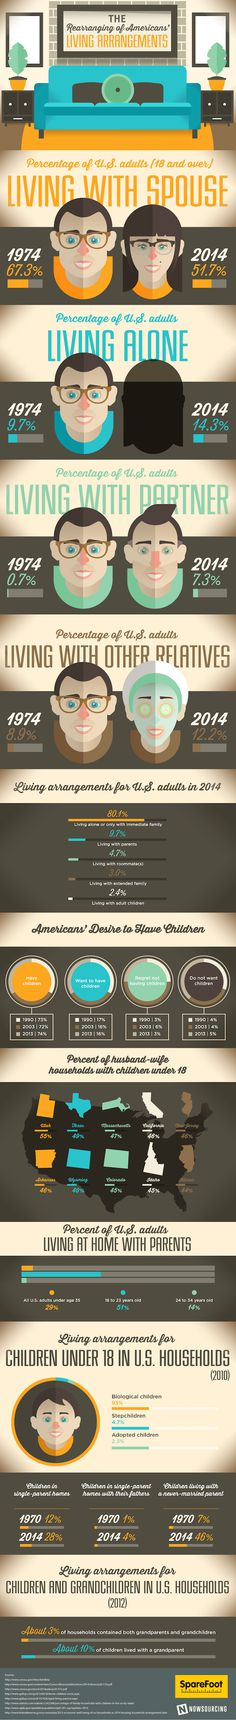 More #Americans are living together than in previous #generations. Learn more from this infographic!